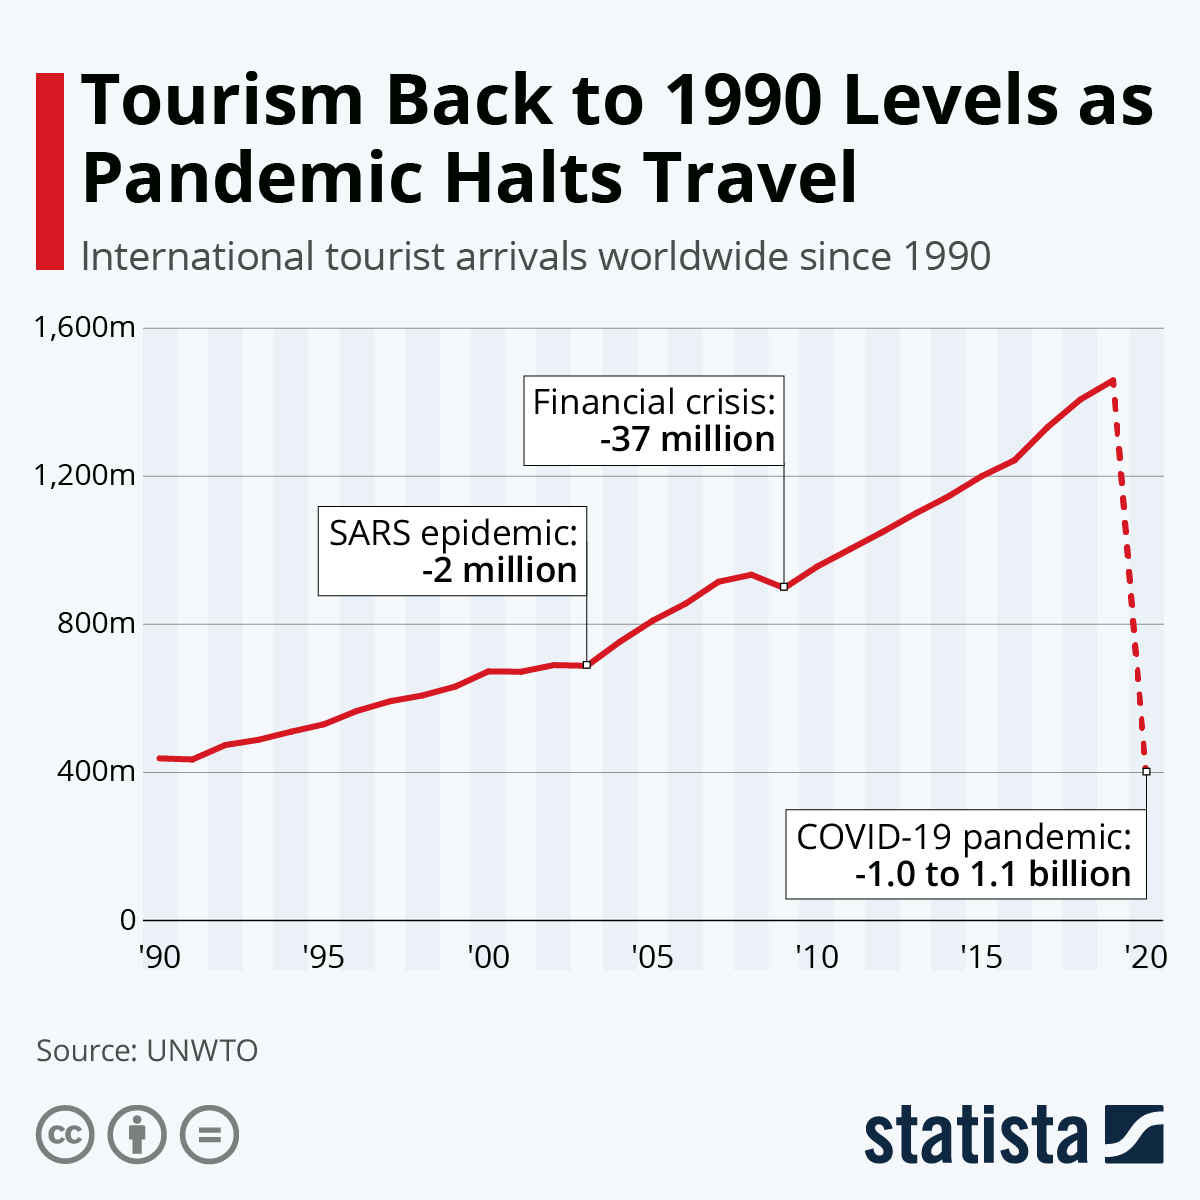 Tourism Tumbles To 1990 Levels As Pandemic Halts Travel